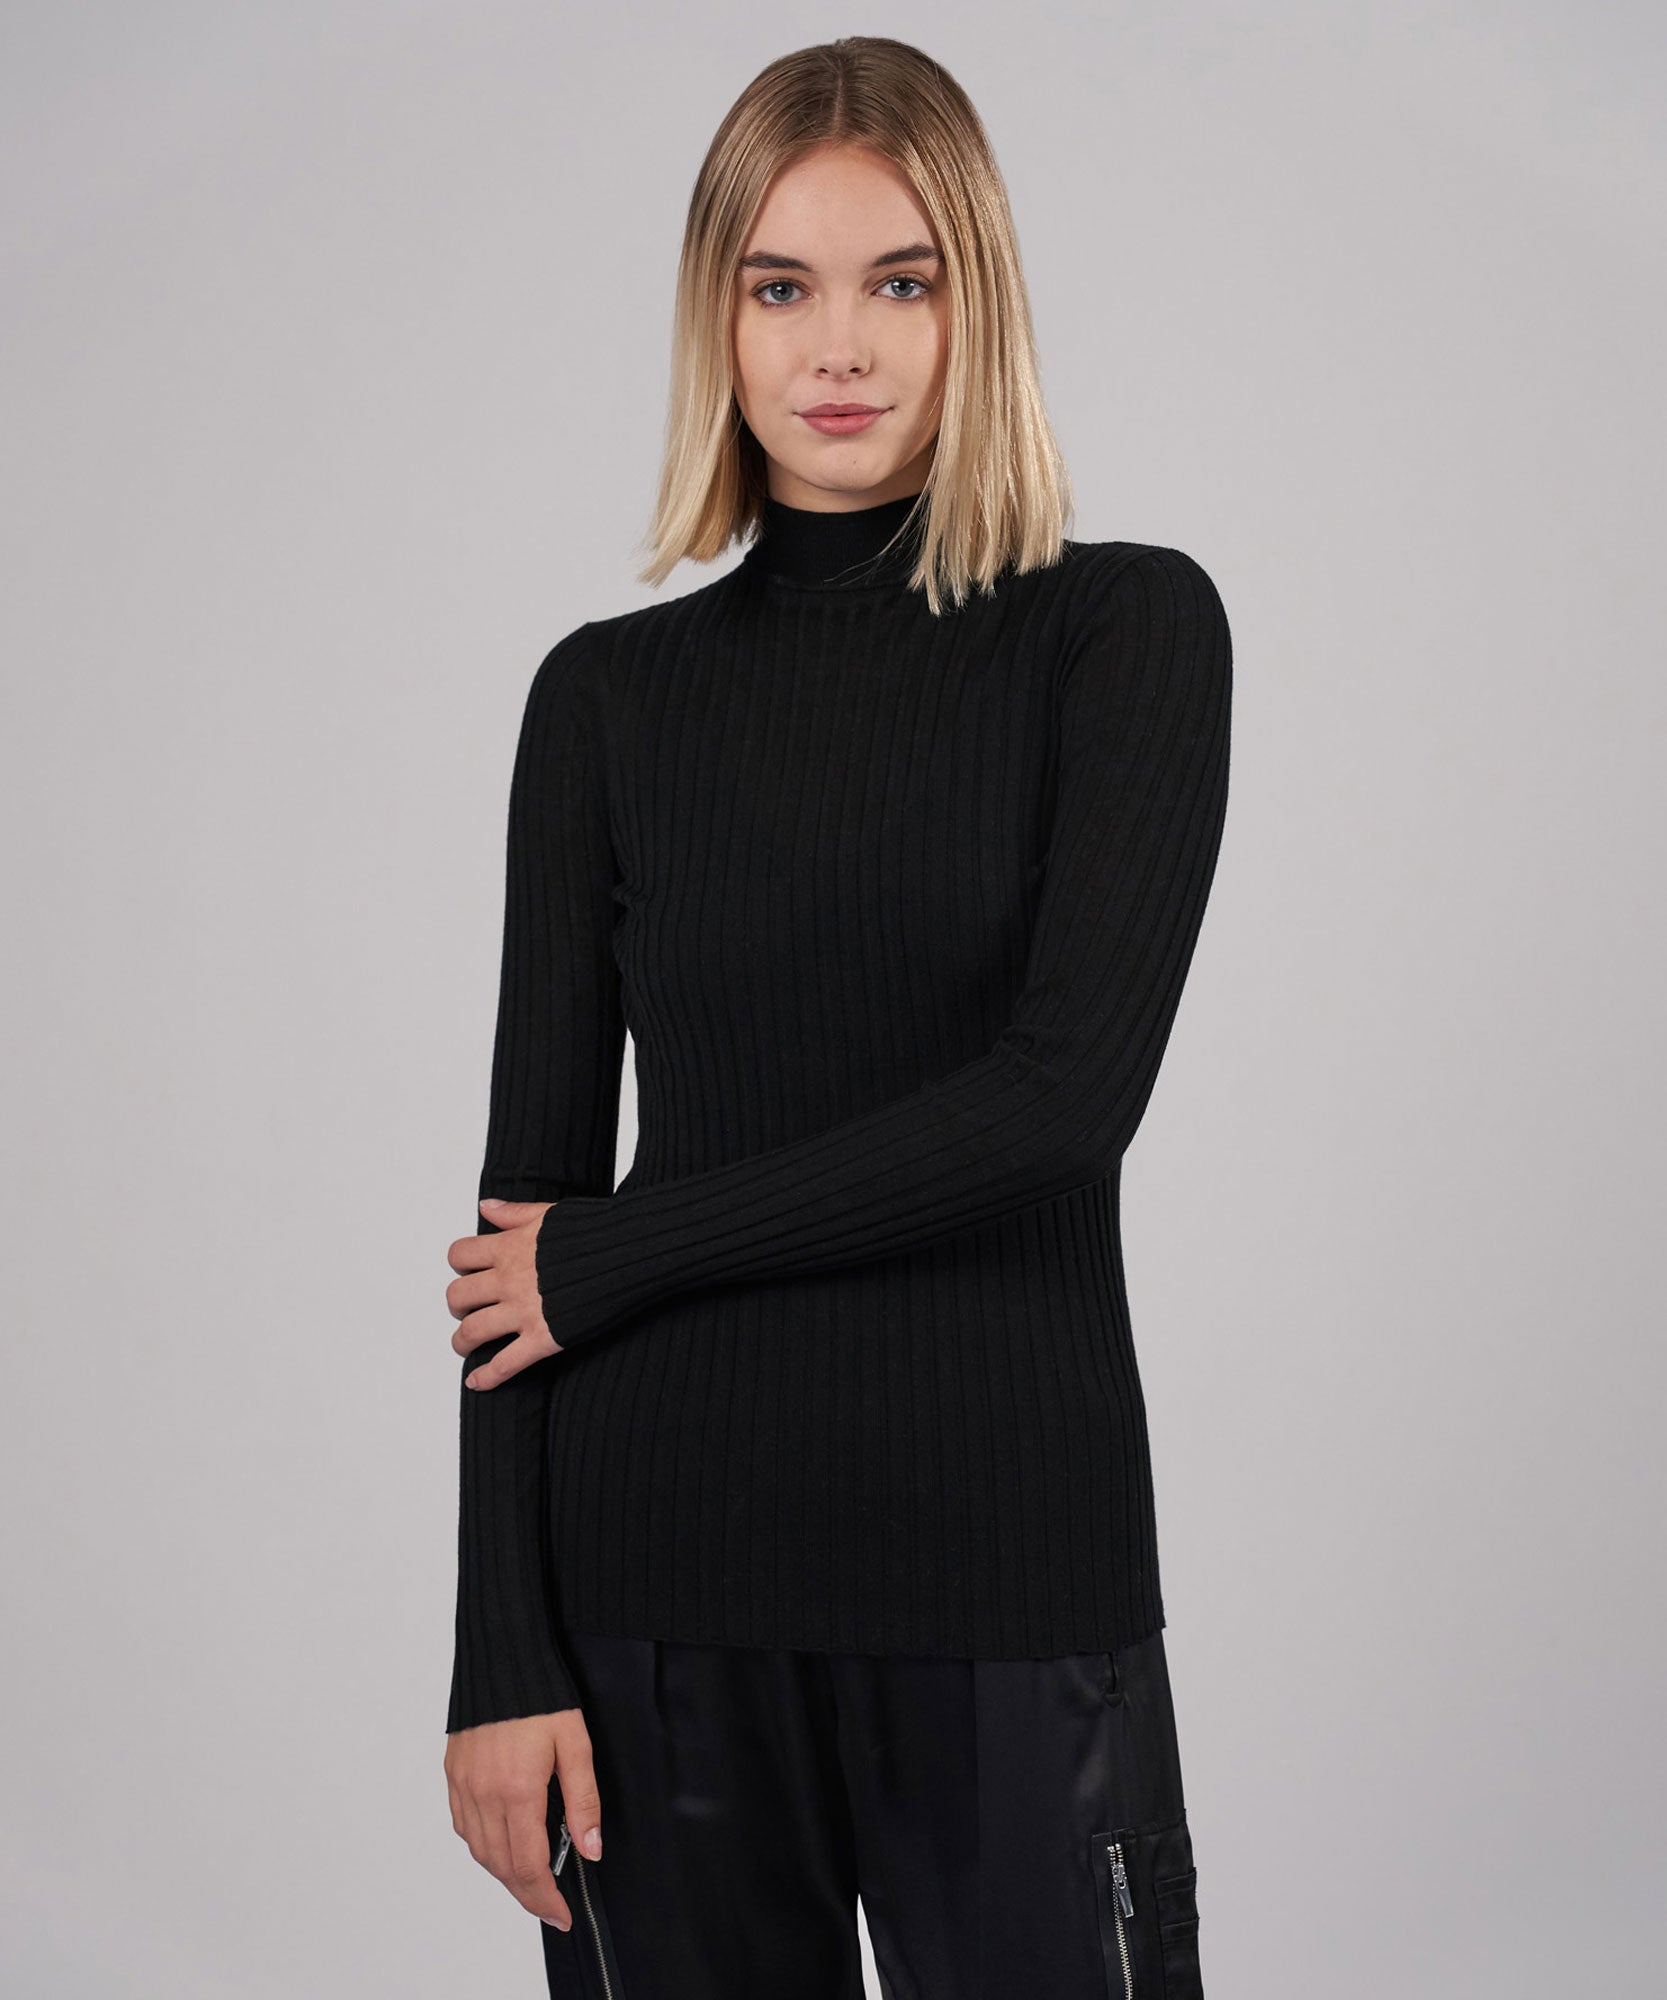 Black Wool Wide Rib Turtleneck - Women's Turtleneck ATM Anthony Thomas Melillo